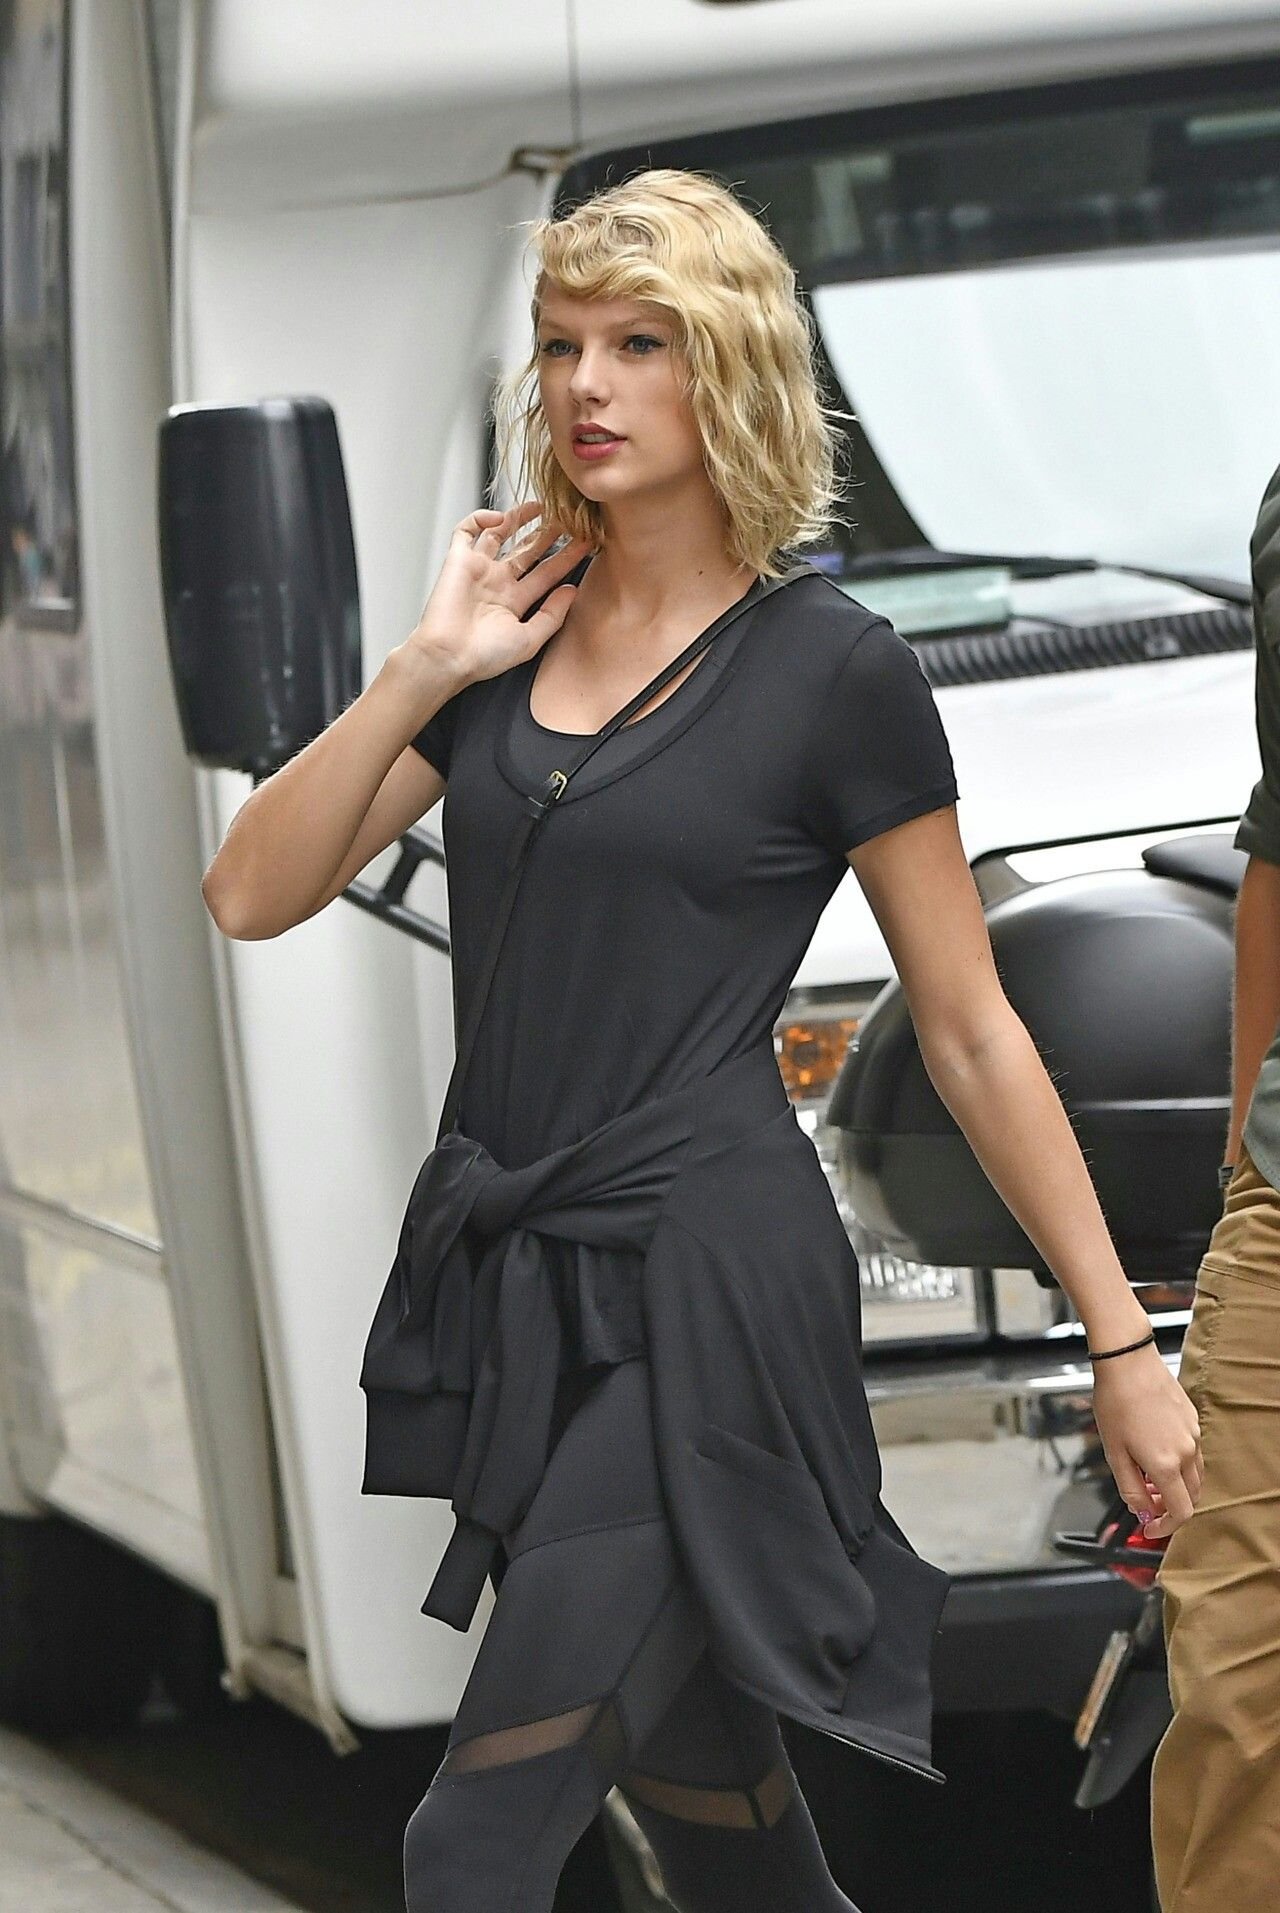 Pin by madswift on Gum Taylor Swift   Taylor swift street ...